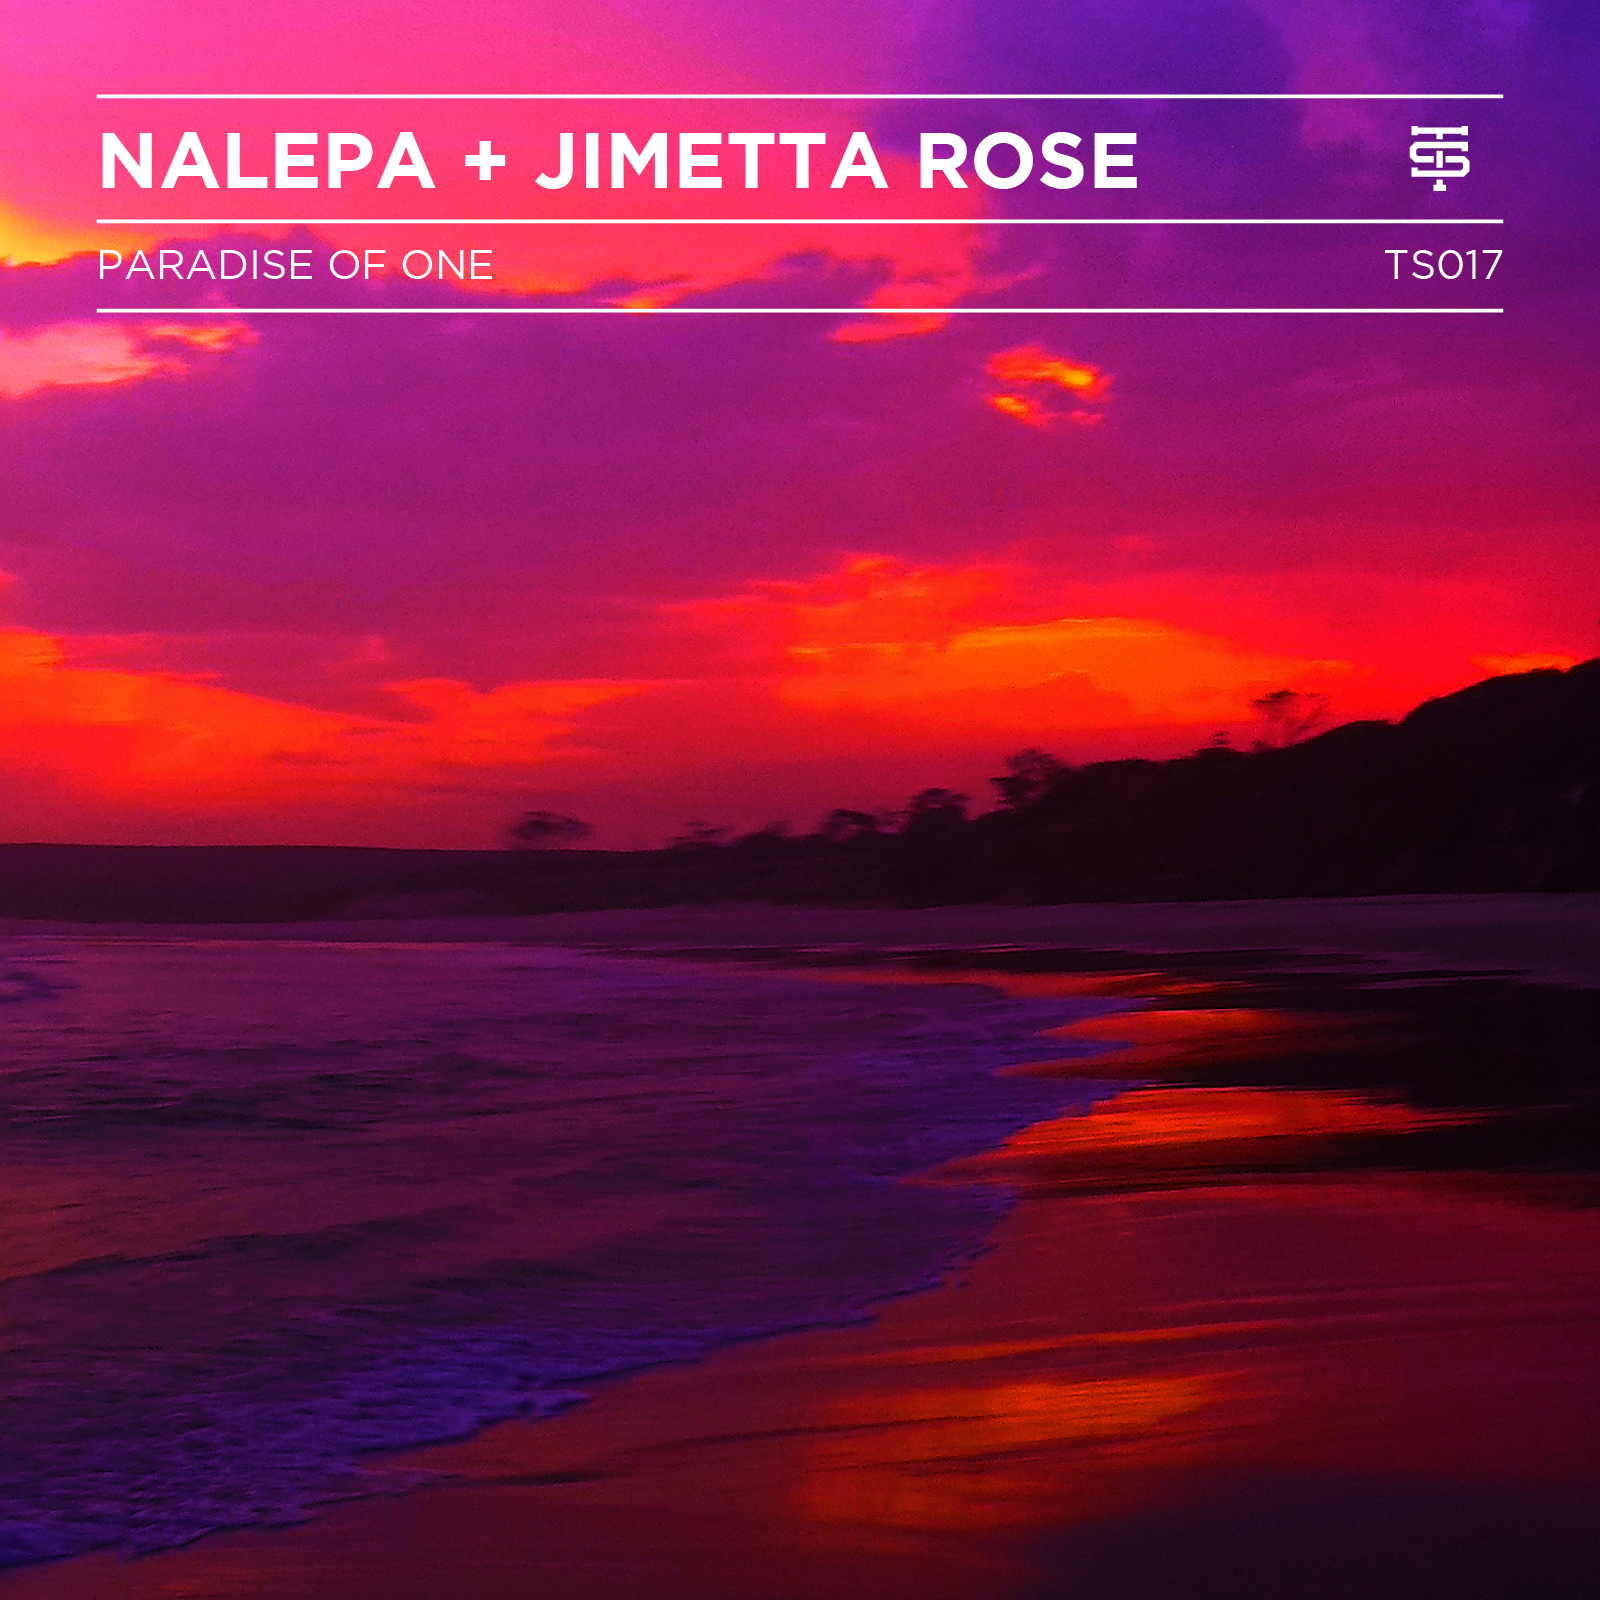 Paradise of One - Nalepa + Jimetta Rose